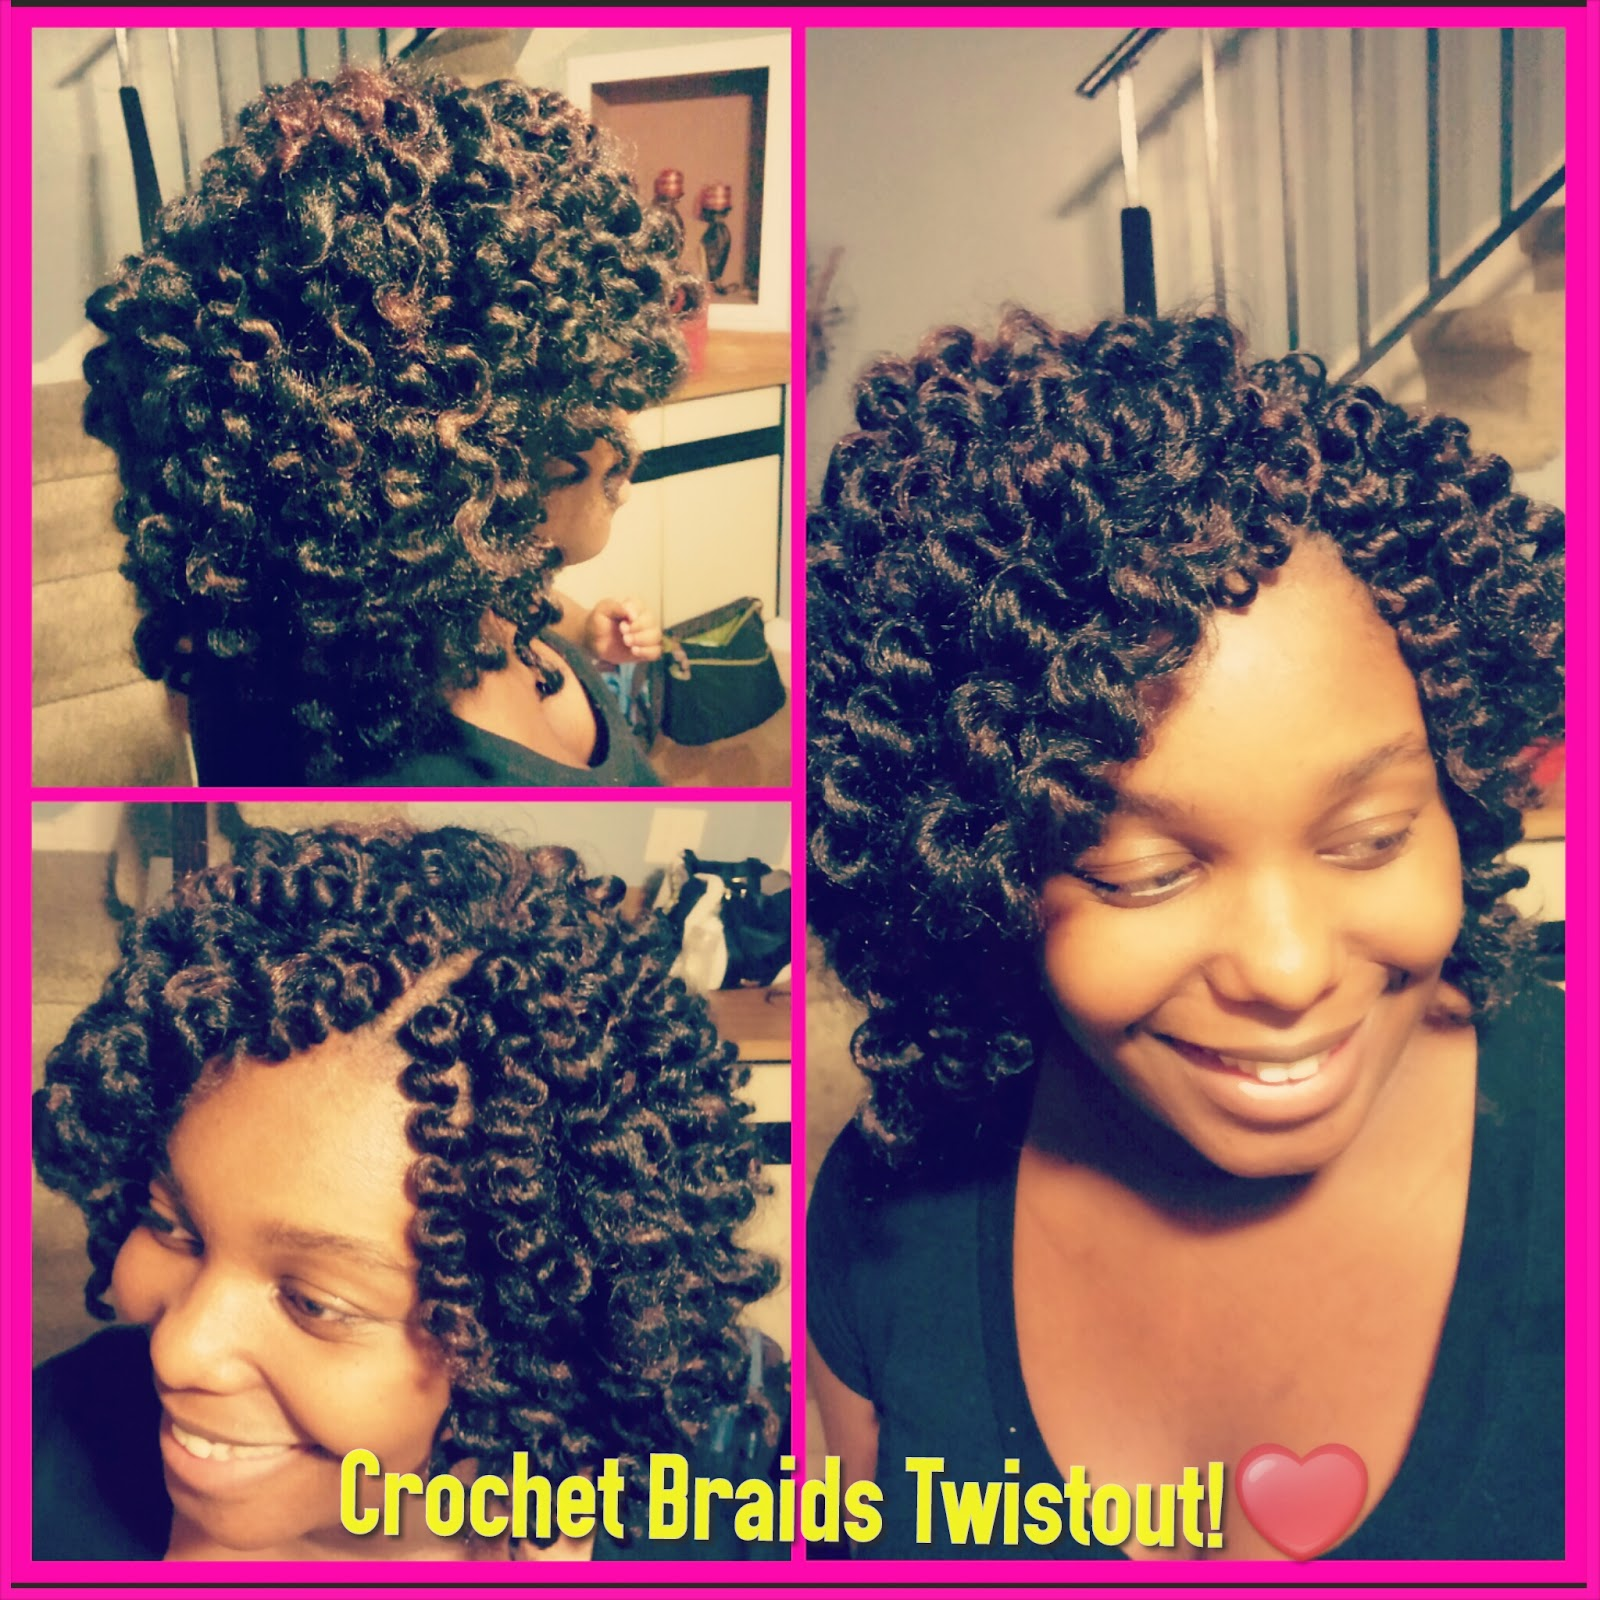 Crochet Braids Hair Growth : ... Hair Journey....Lets Grow!: First Attempt! Crochet Braids/Twistout